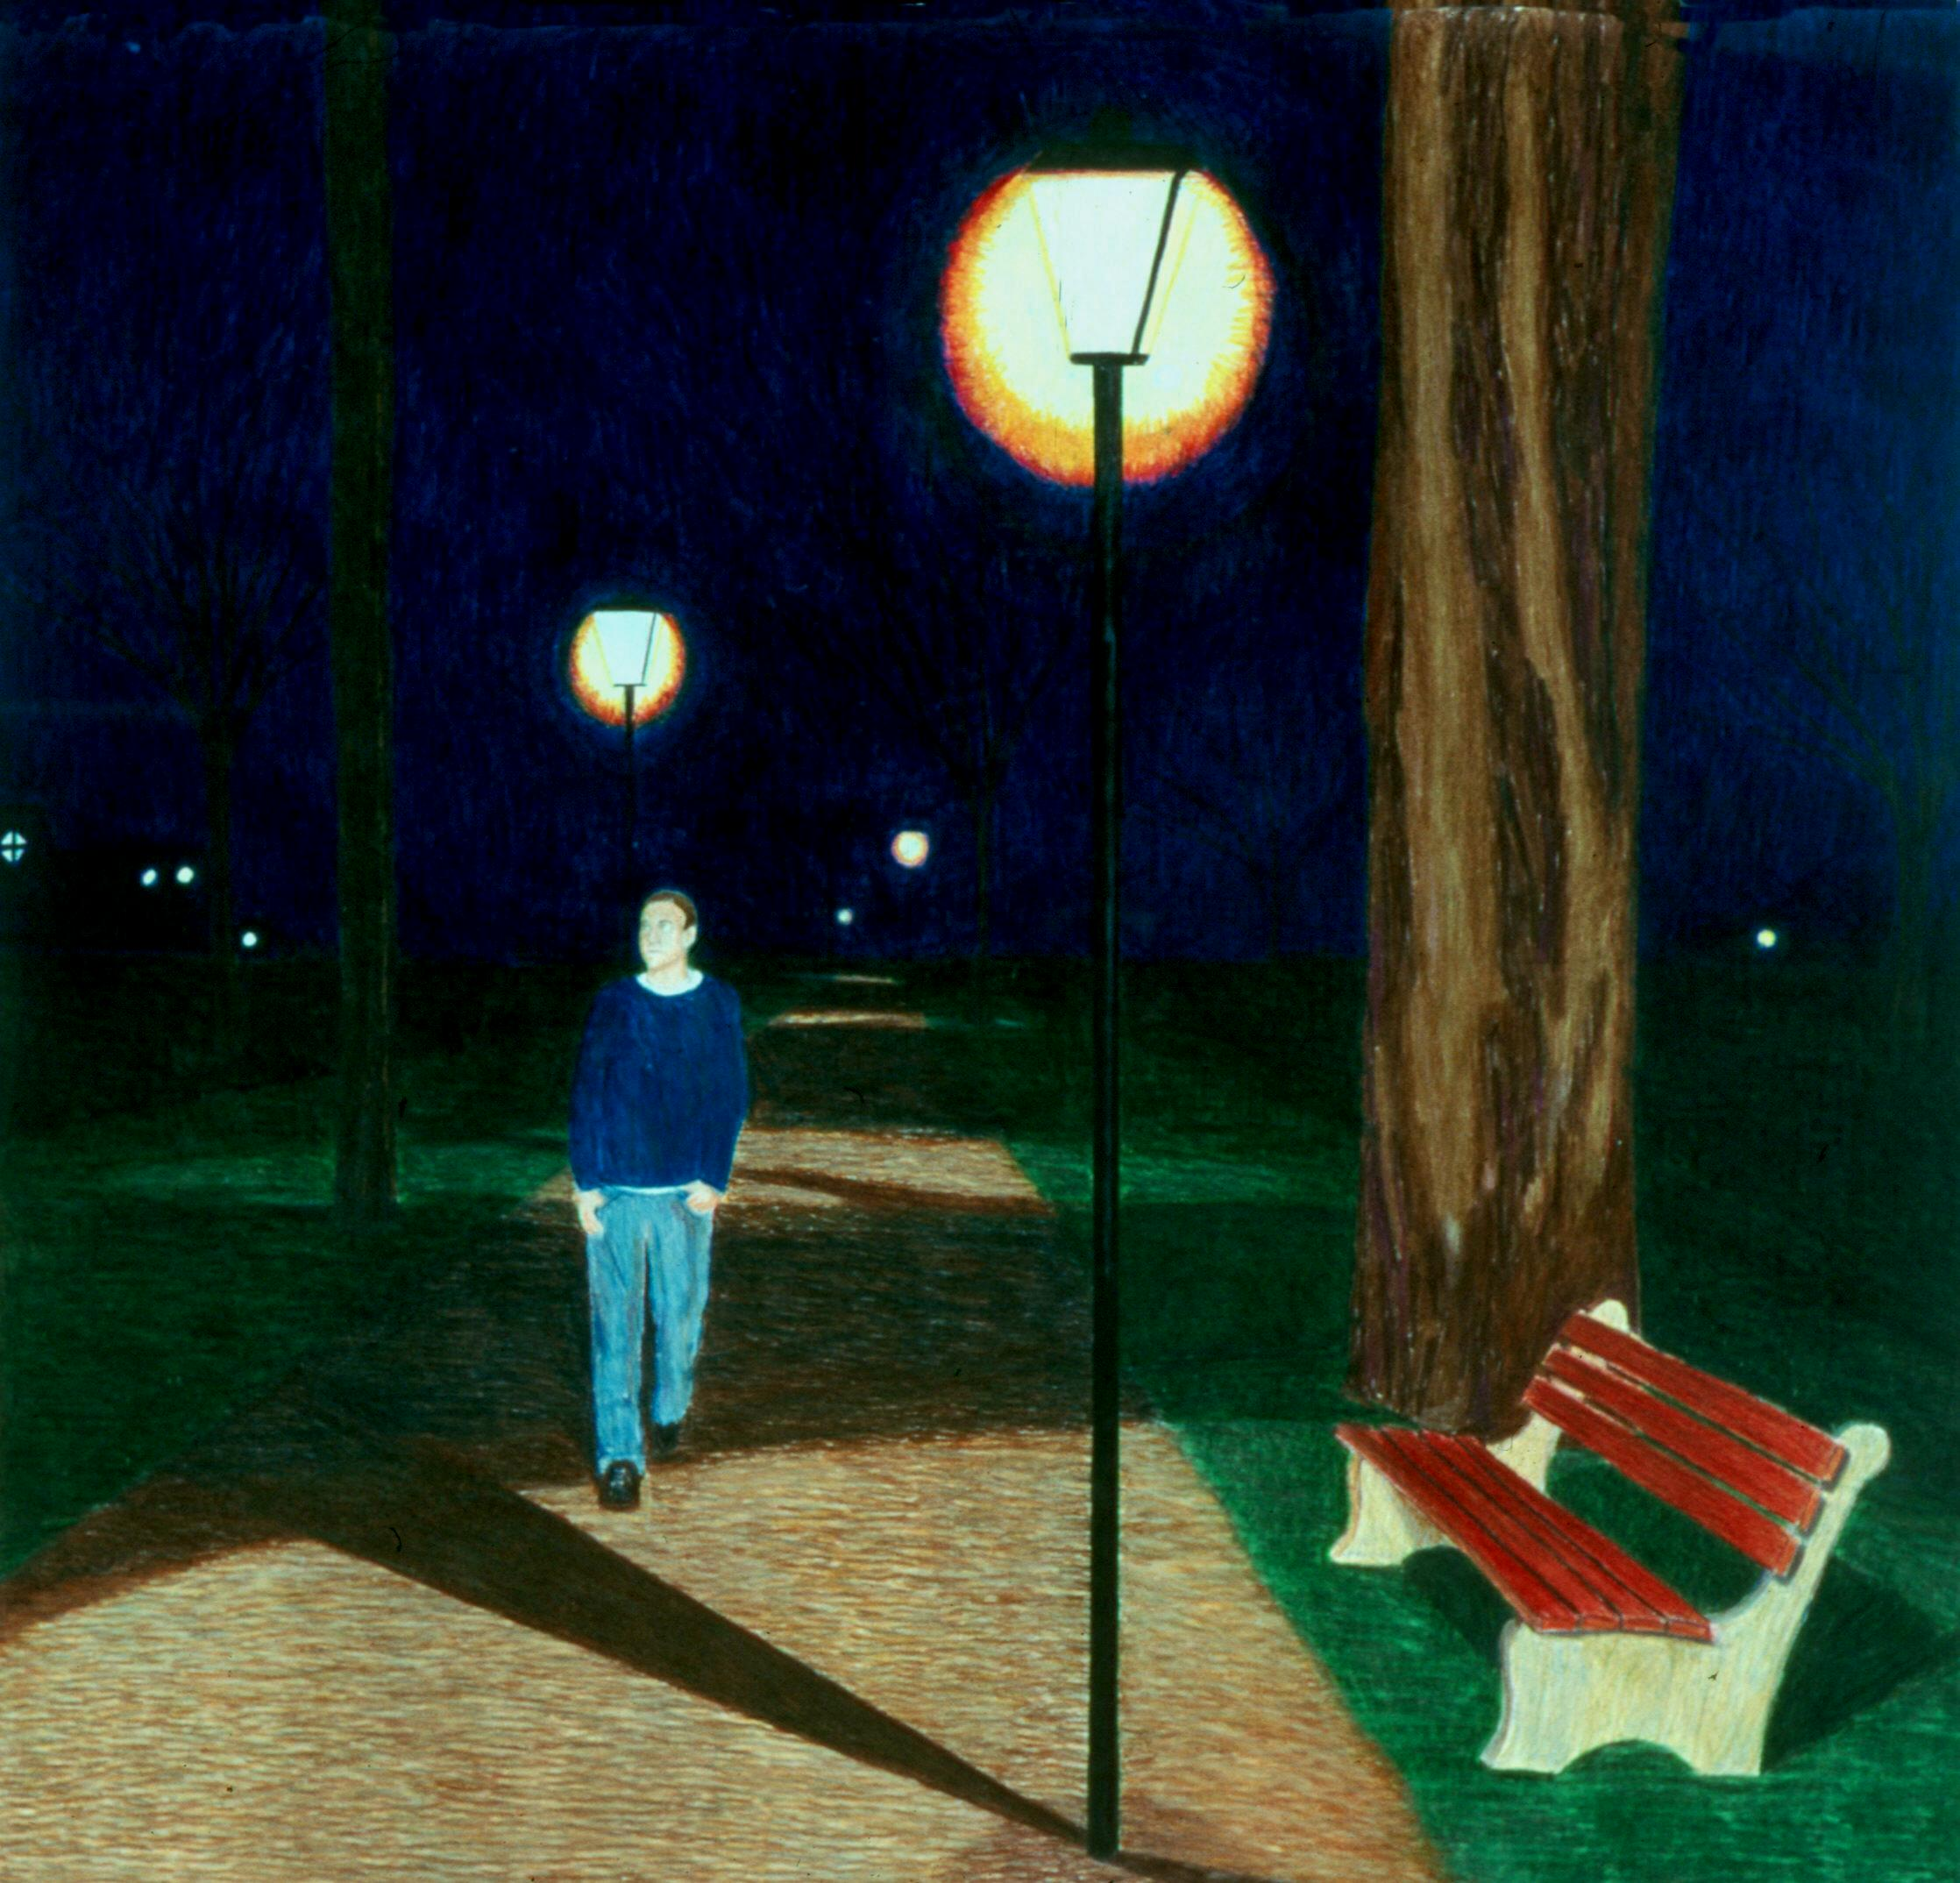 Night Lights, Walking the Path